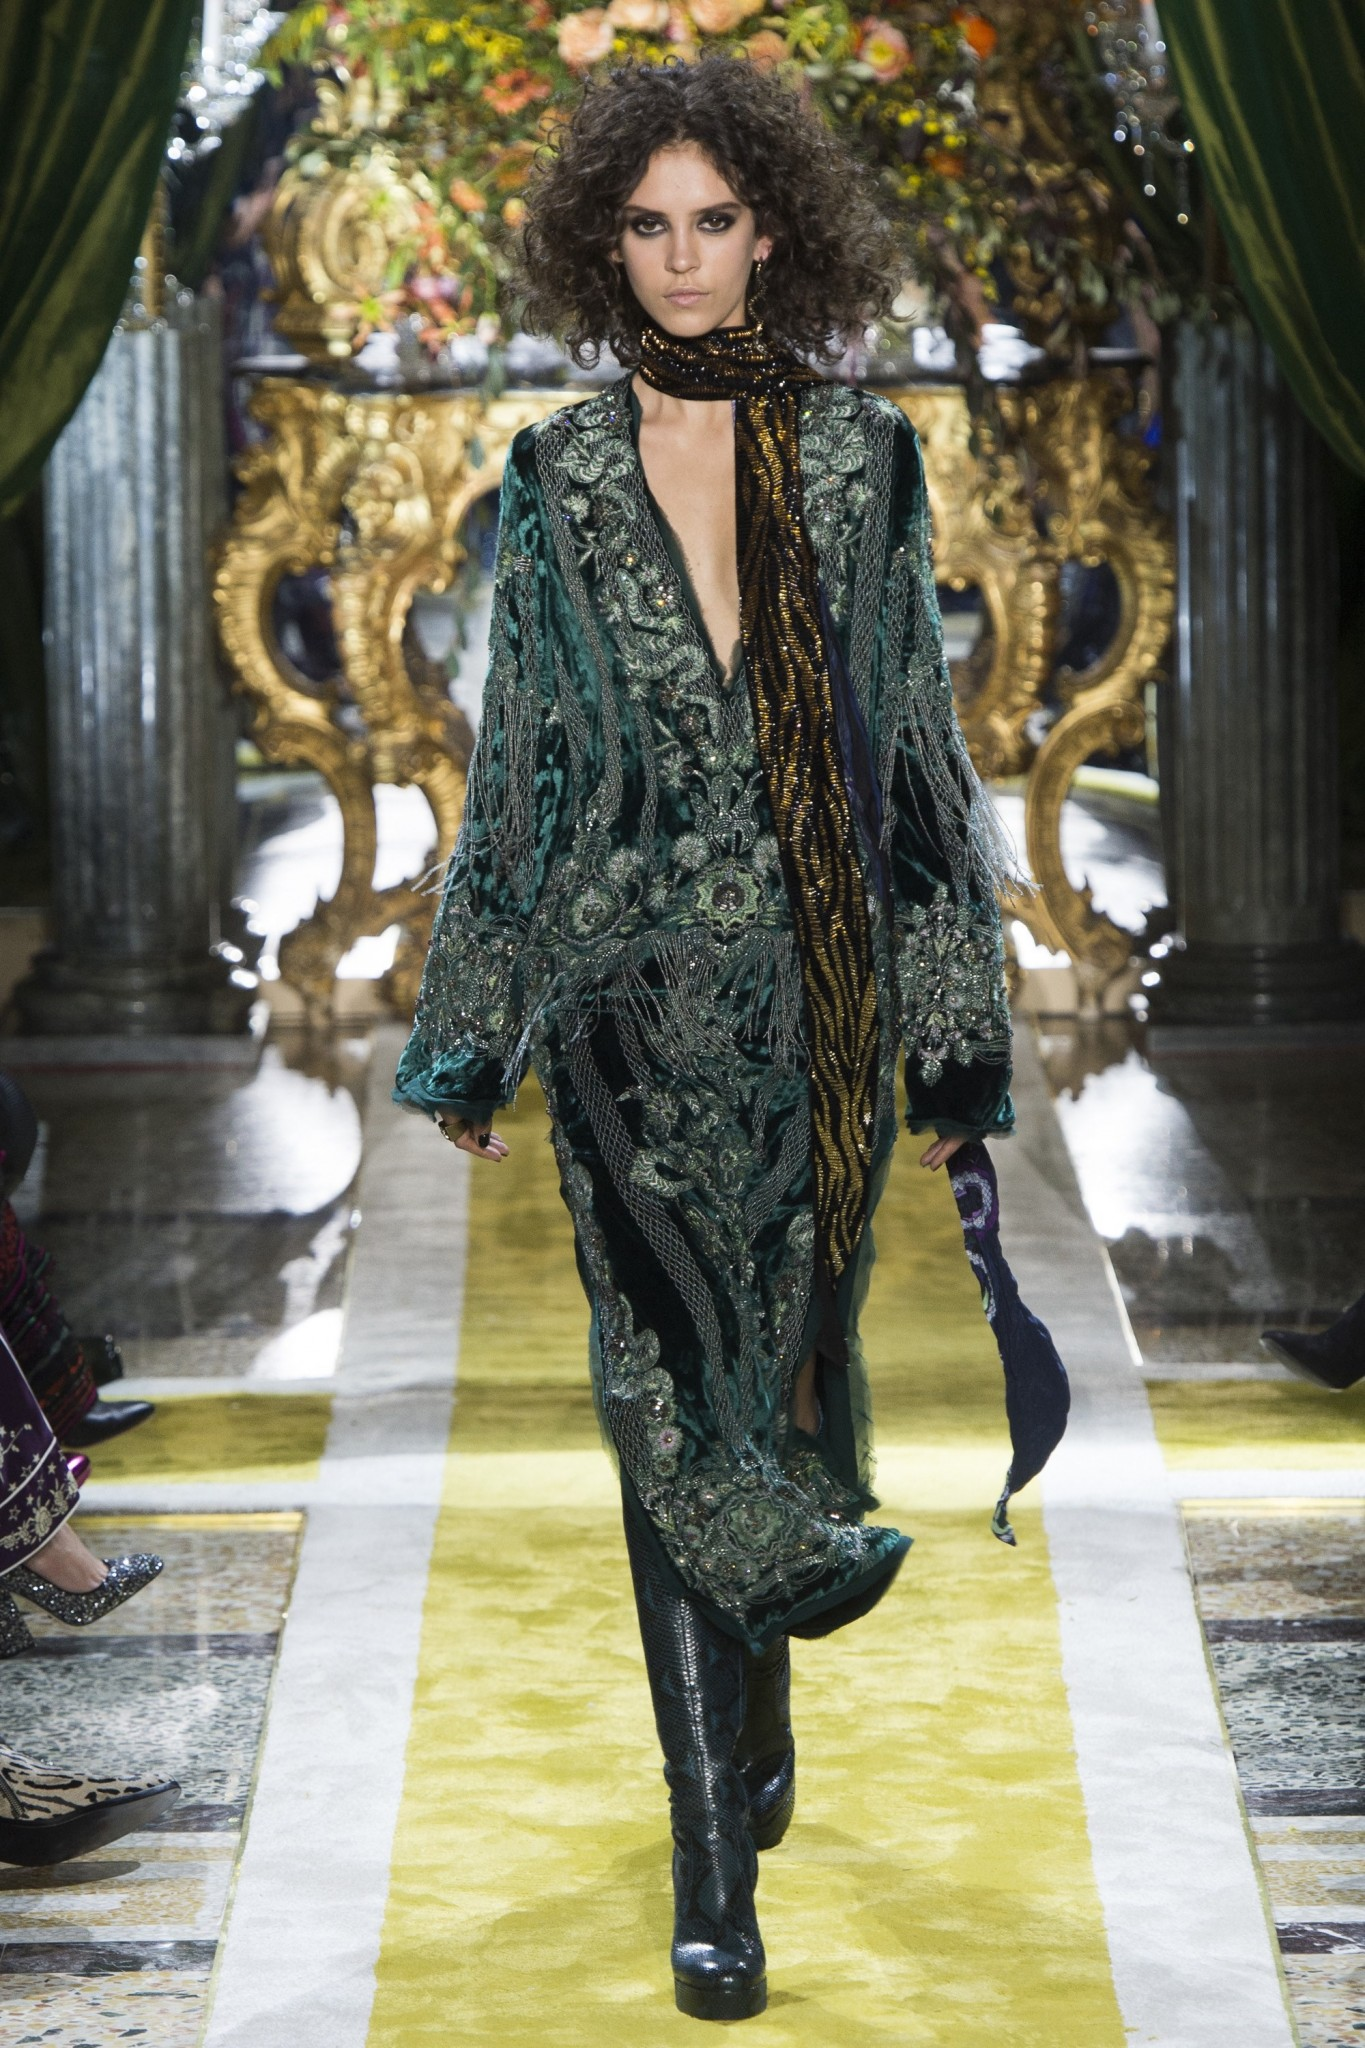 fabulous_the_boho_maxi_dress_roberto_cavalli_fw2016-2